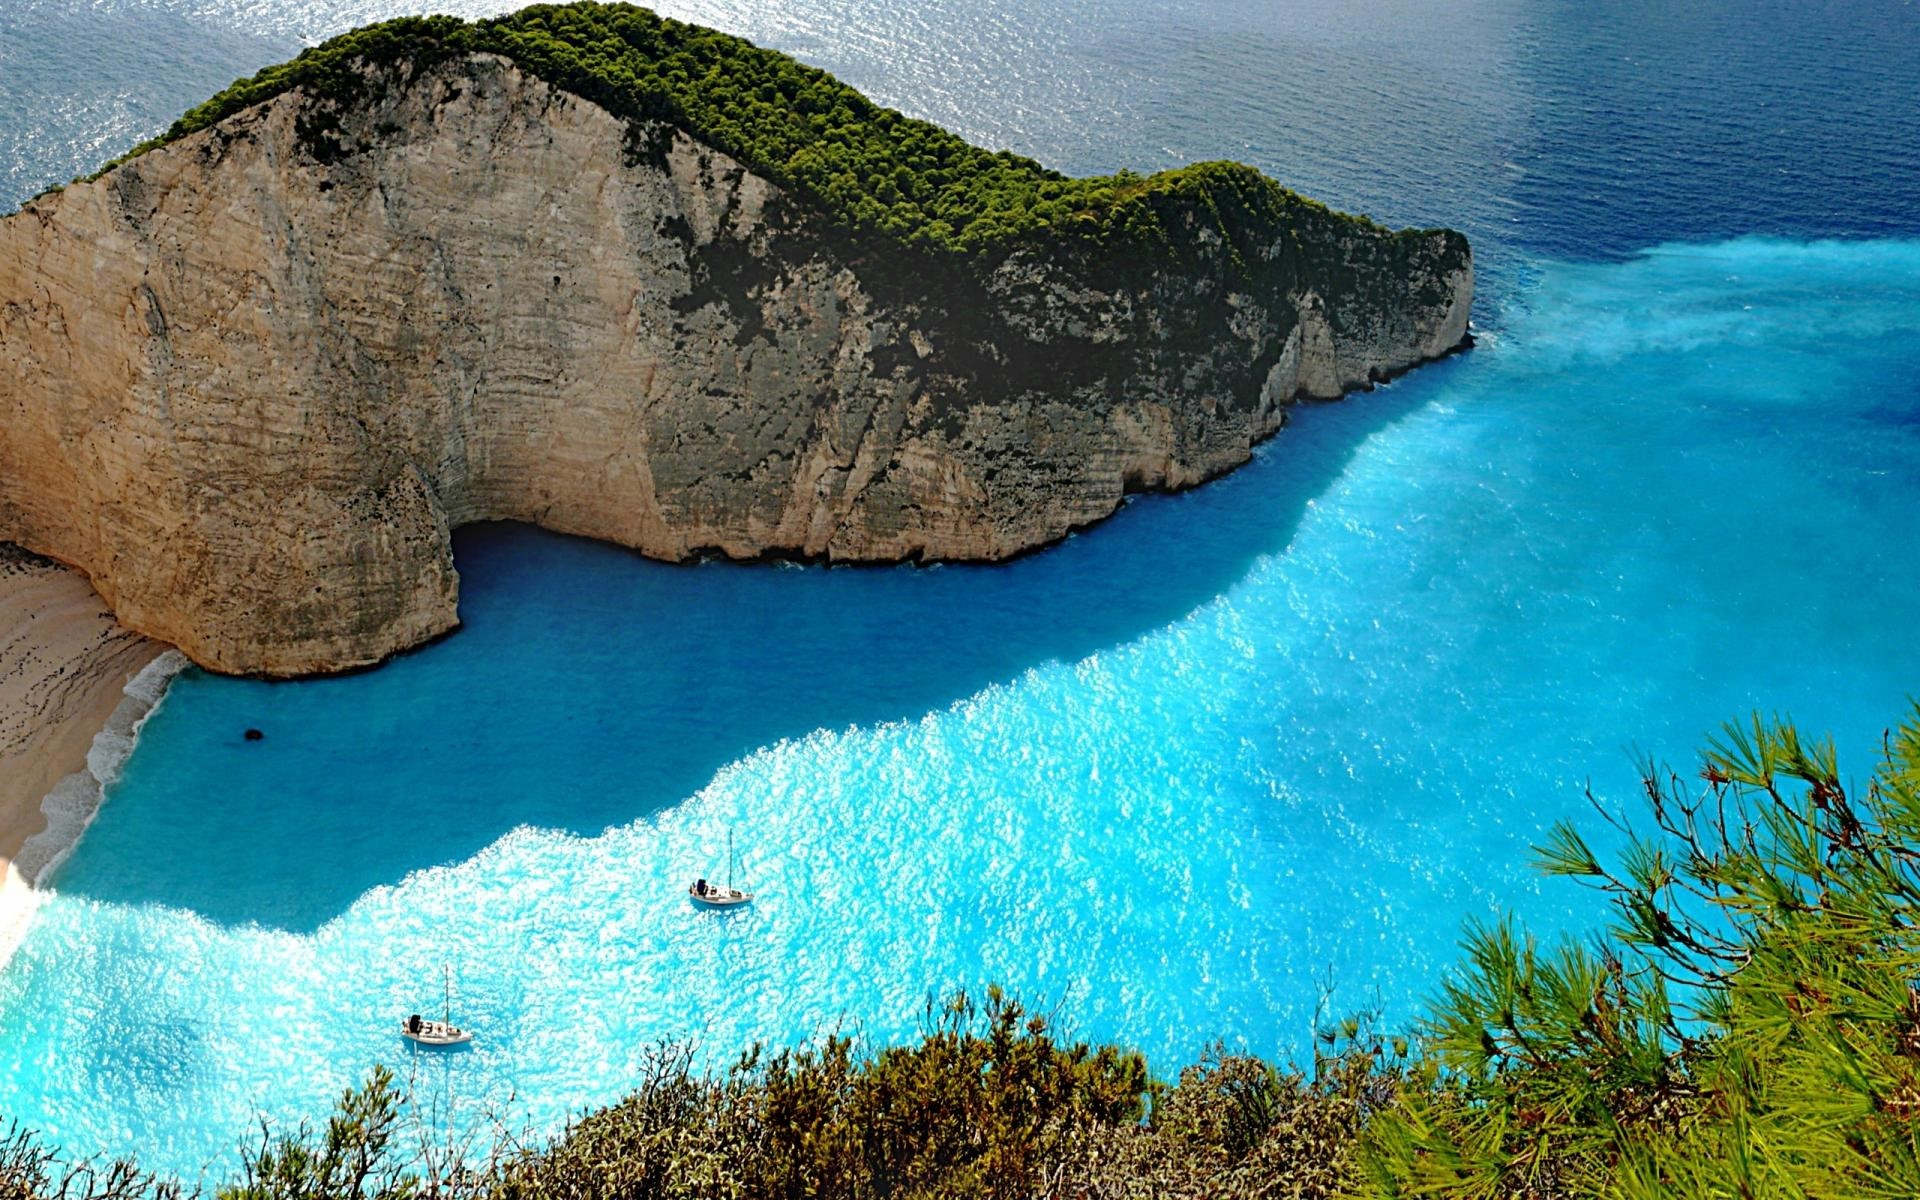 Zakynthos Greek Island Wallpaper HD Wallpapers 1920x1200